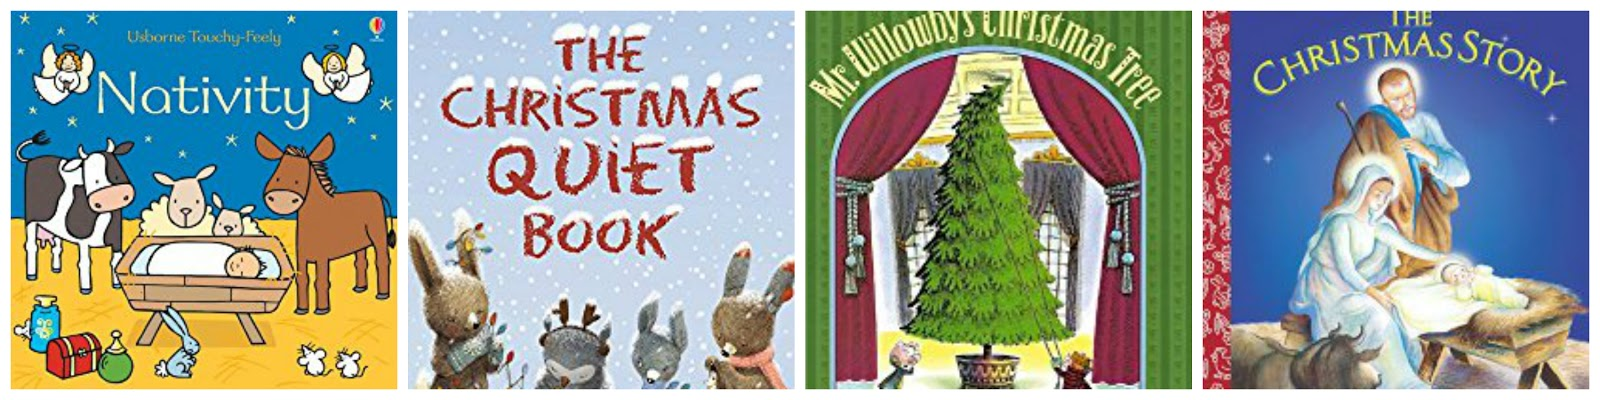 fabulous kids books for christmas christmas books for toddlers christmas story - Christmas Story For Toddlers